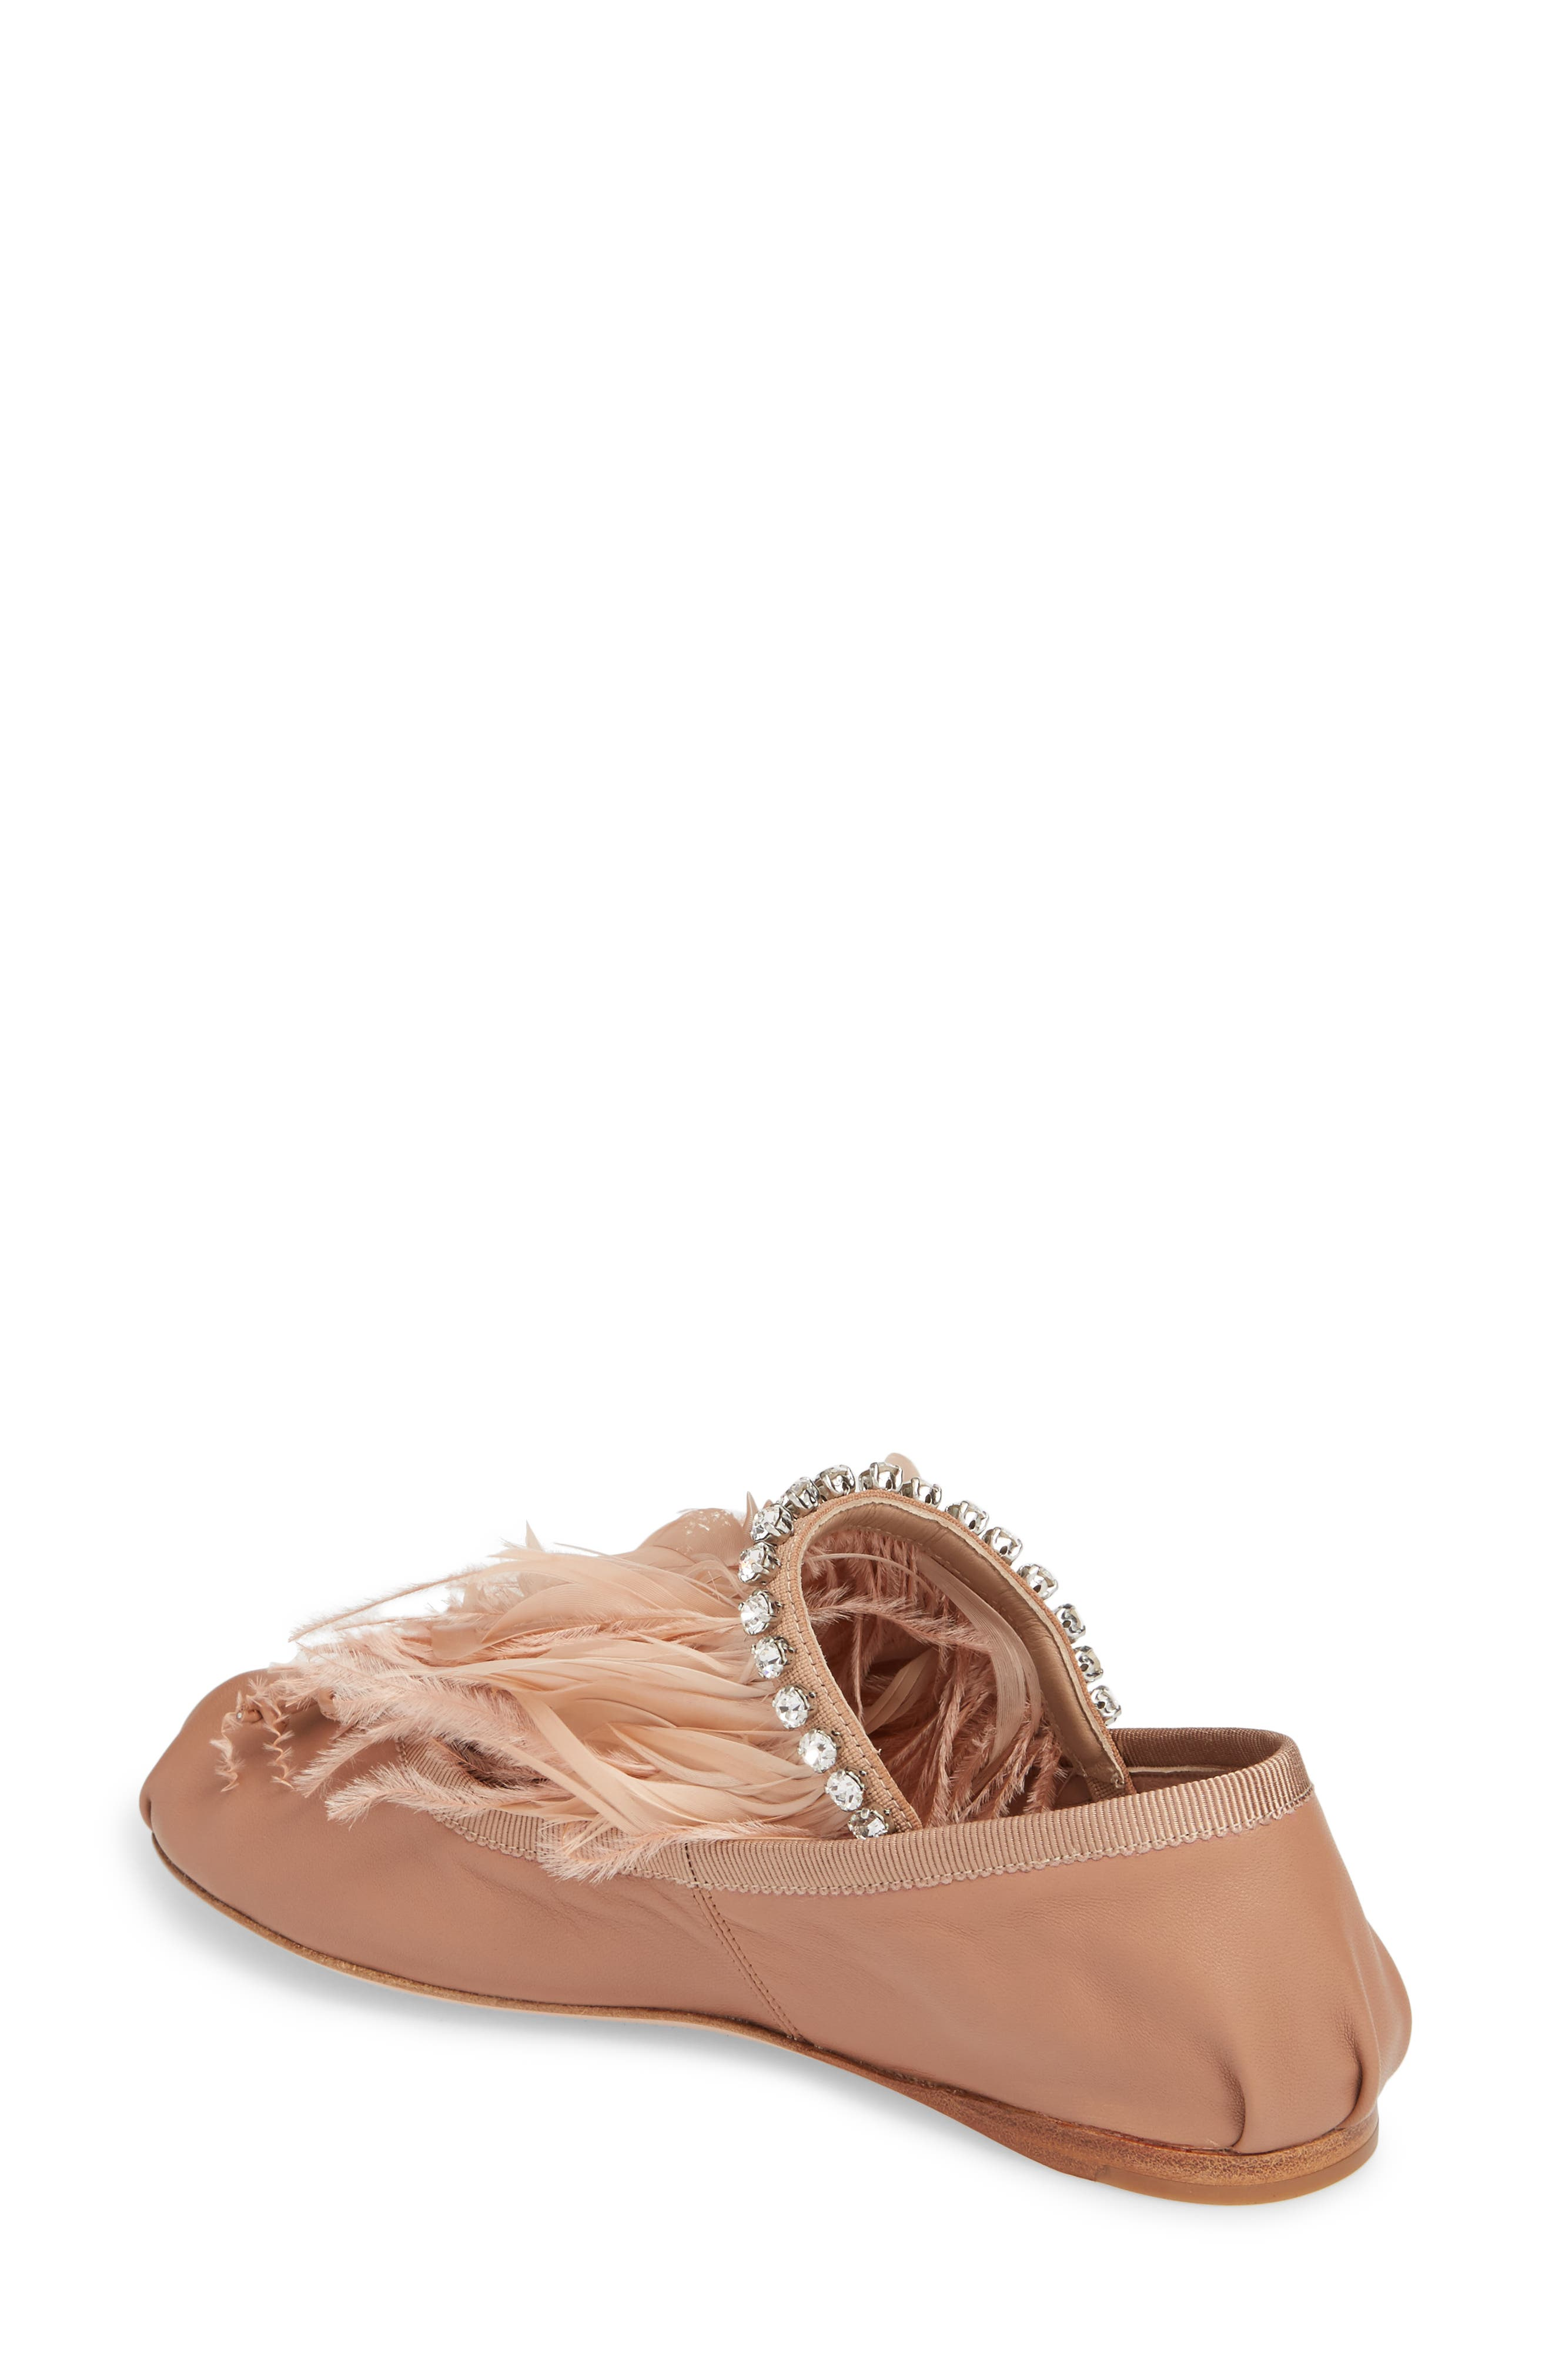 Feather Embellished Ballet Flat,                             Alternate thumbnail 2, color,